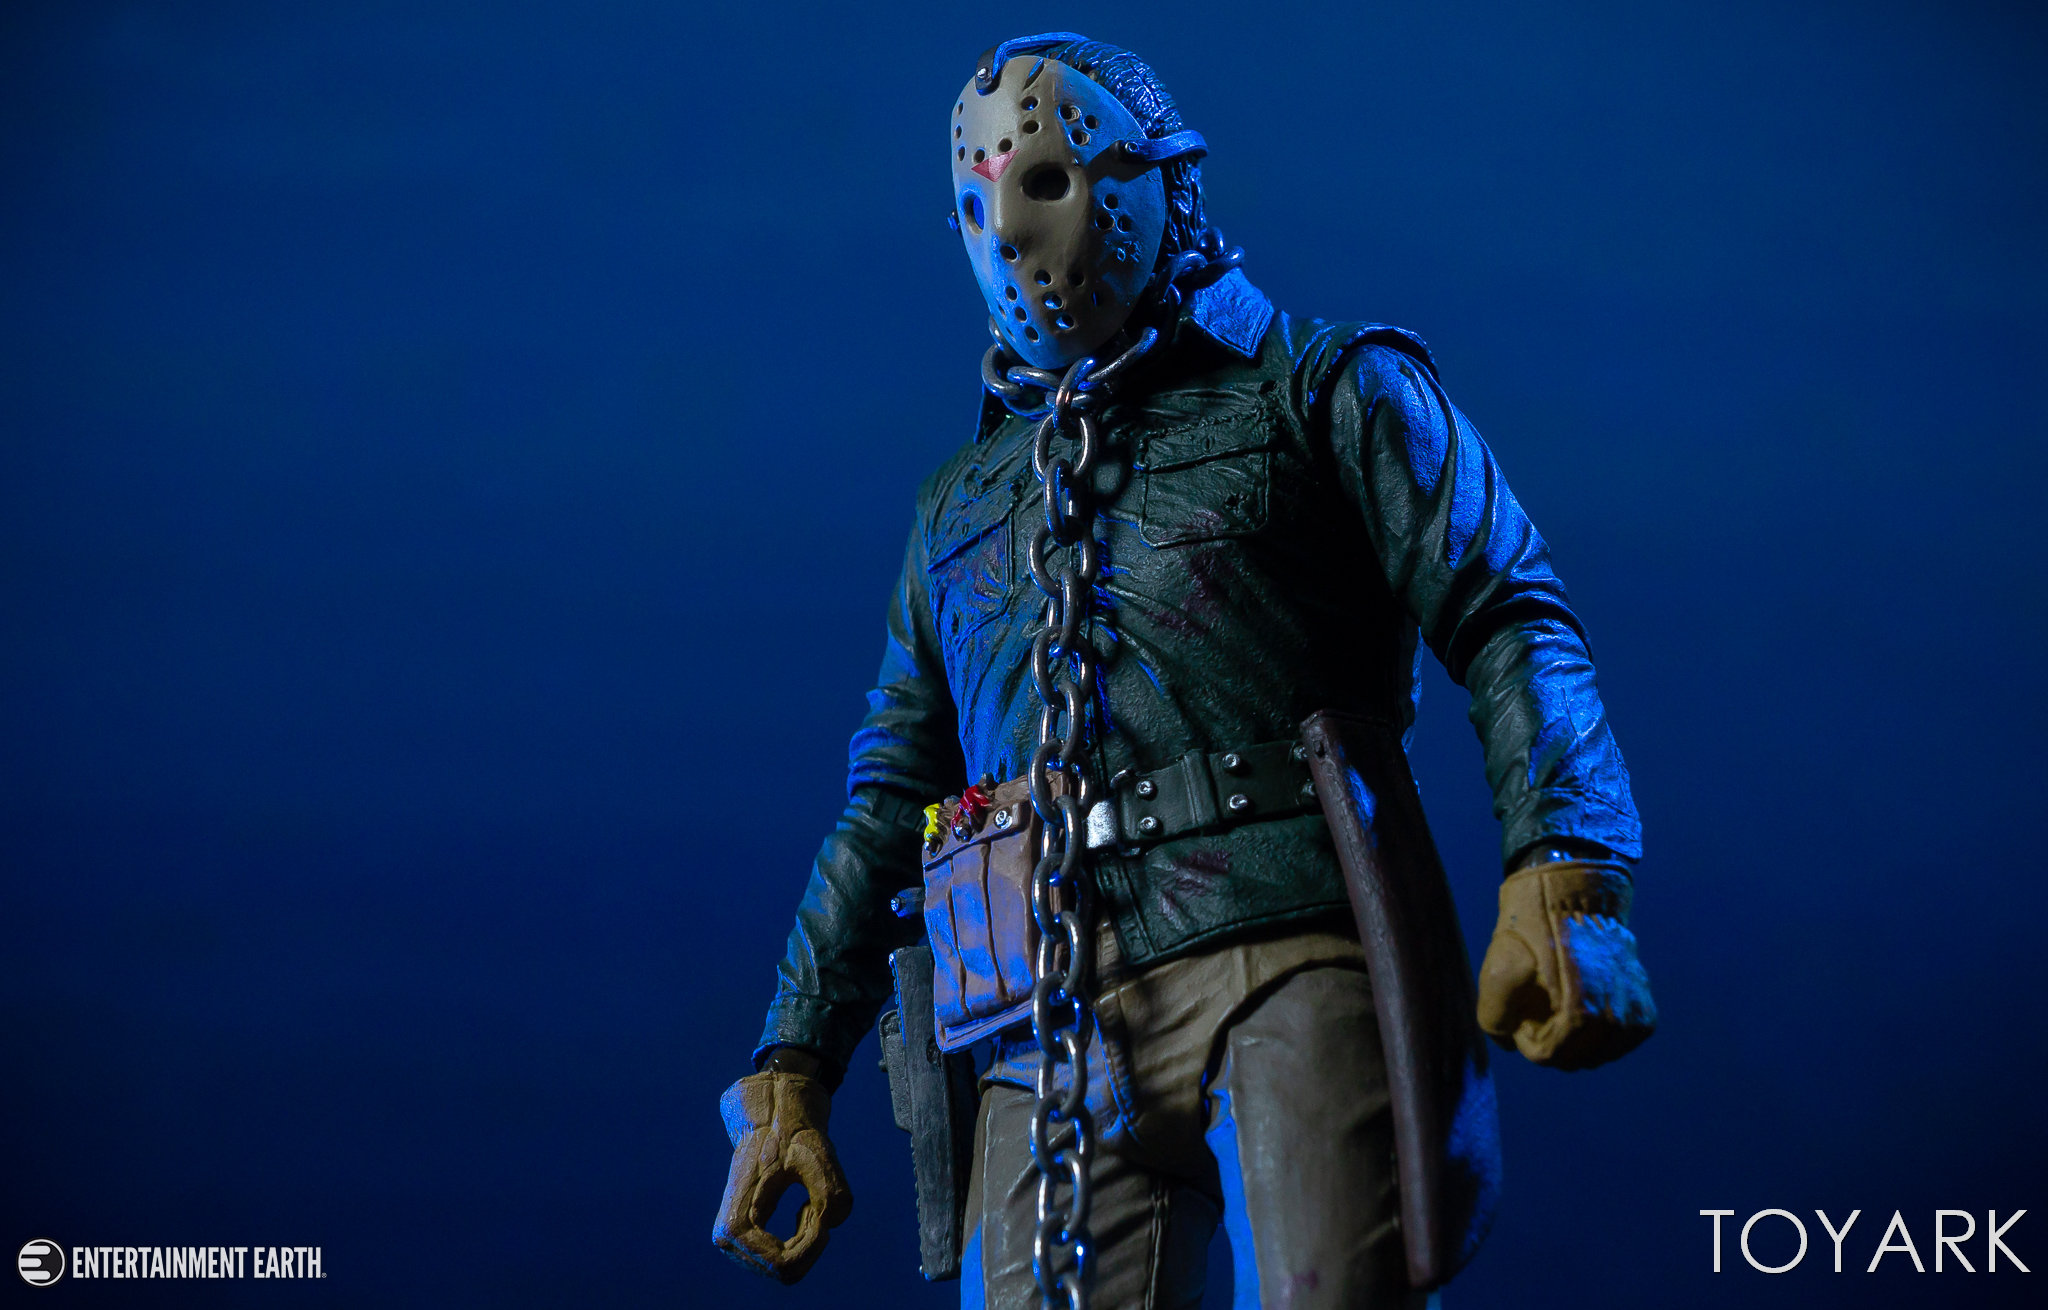 http://news.toyark.com/wp-content/uploads/sites/4/2018/04/NECA-Friday-The-13th-Crystal-Lake-Set-035.jpg